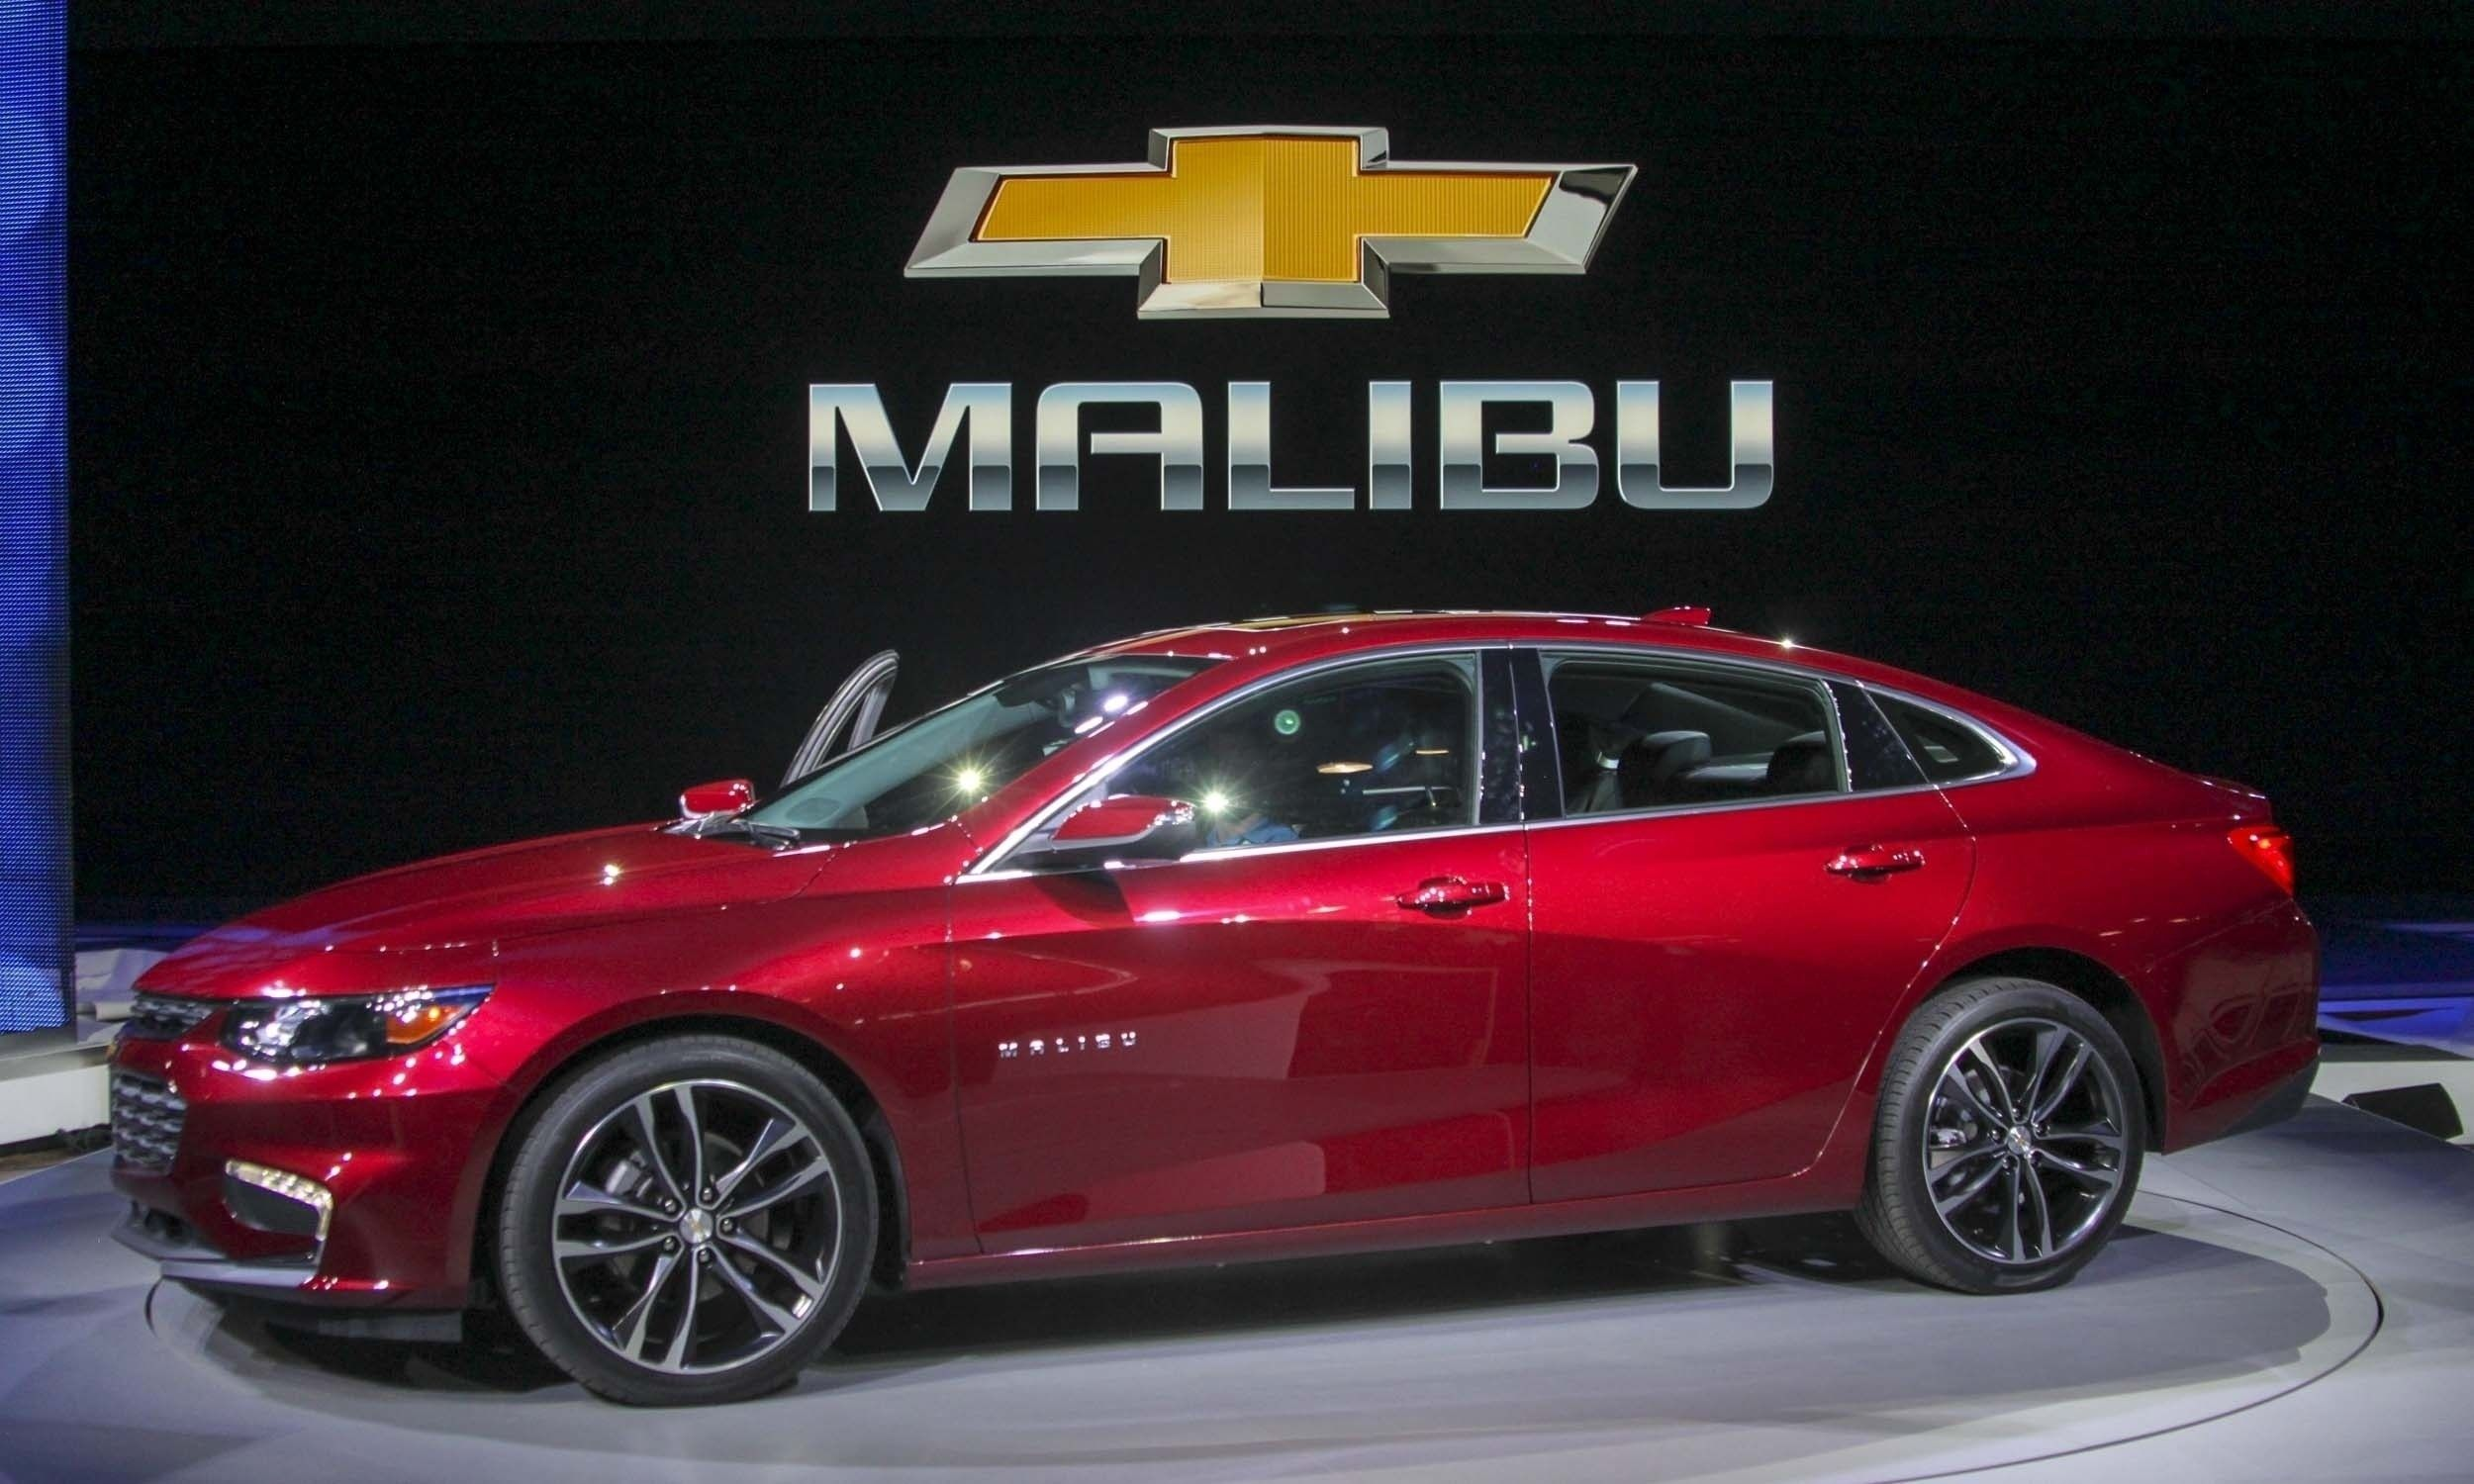 2019 Chevy Malibu New Review Chevy Malibu Chevrolet Malibu